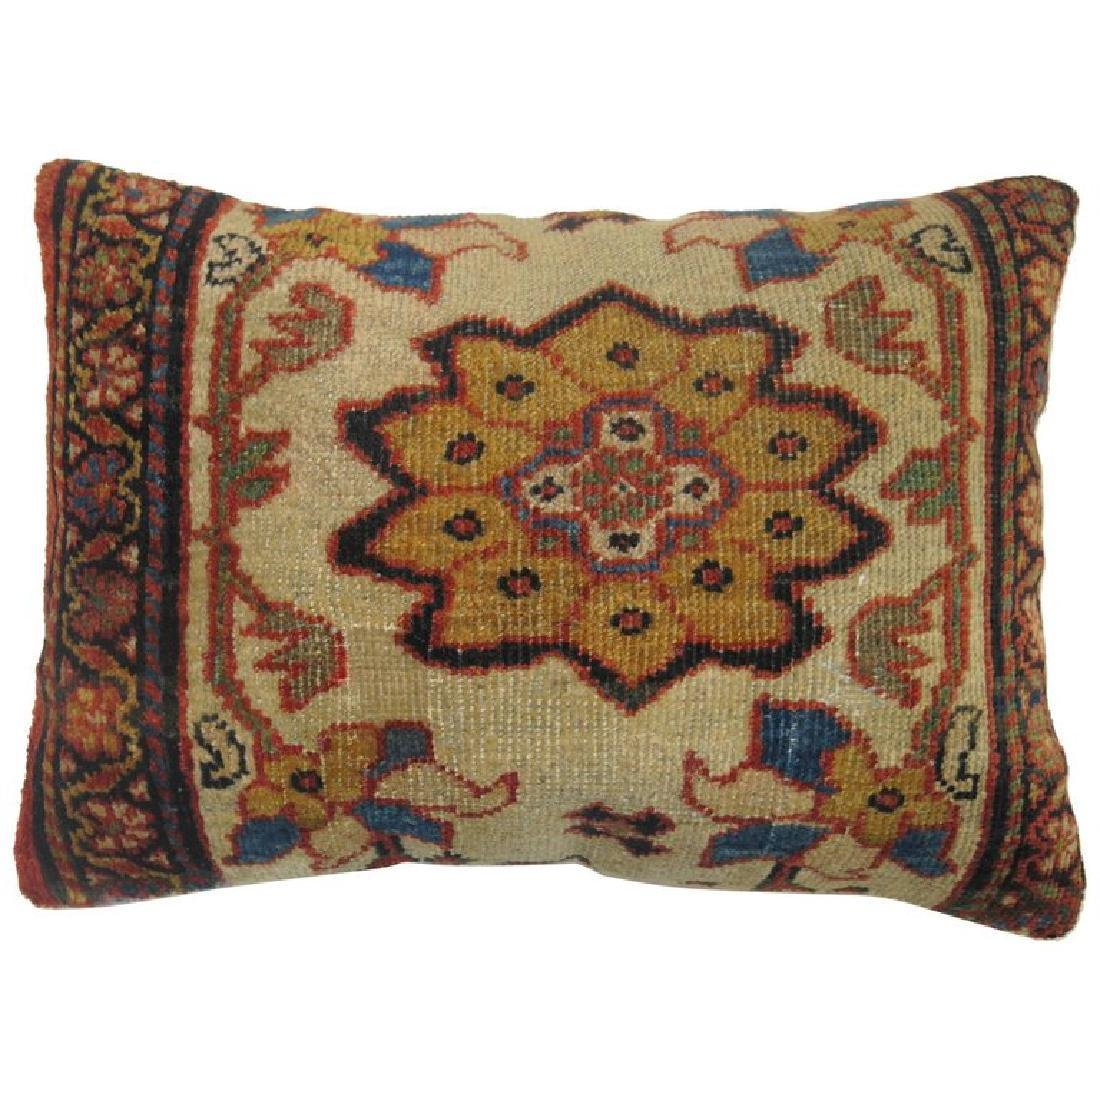 Persian Sultanabad Rug Pillow 1.2x1.8